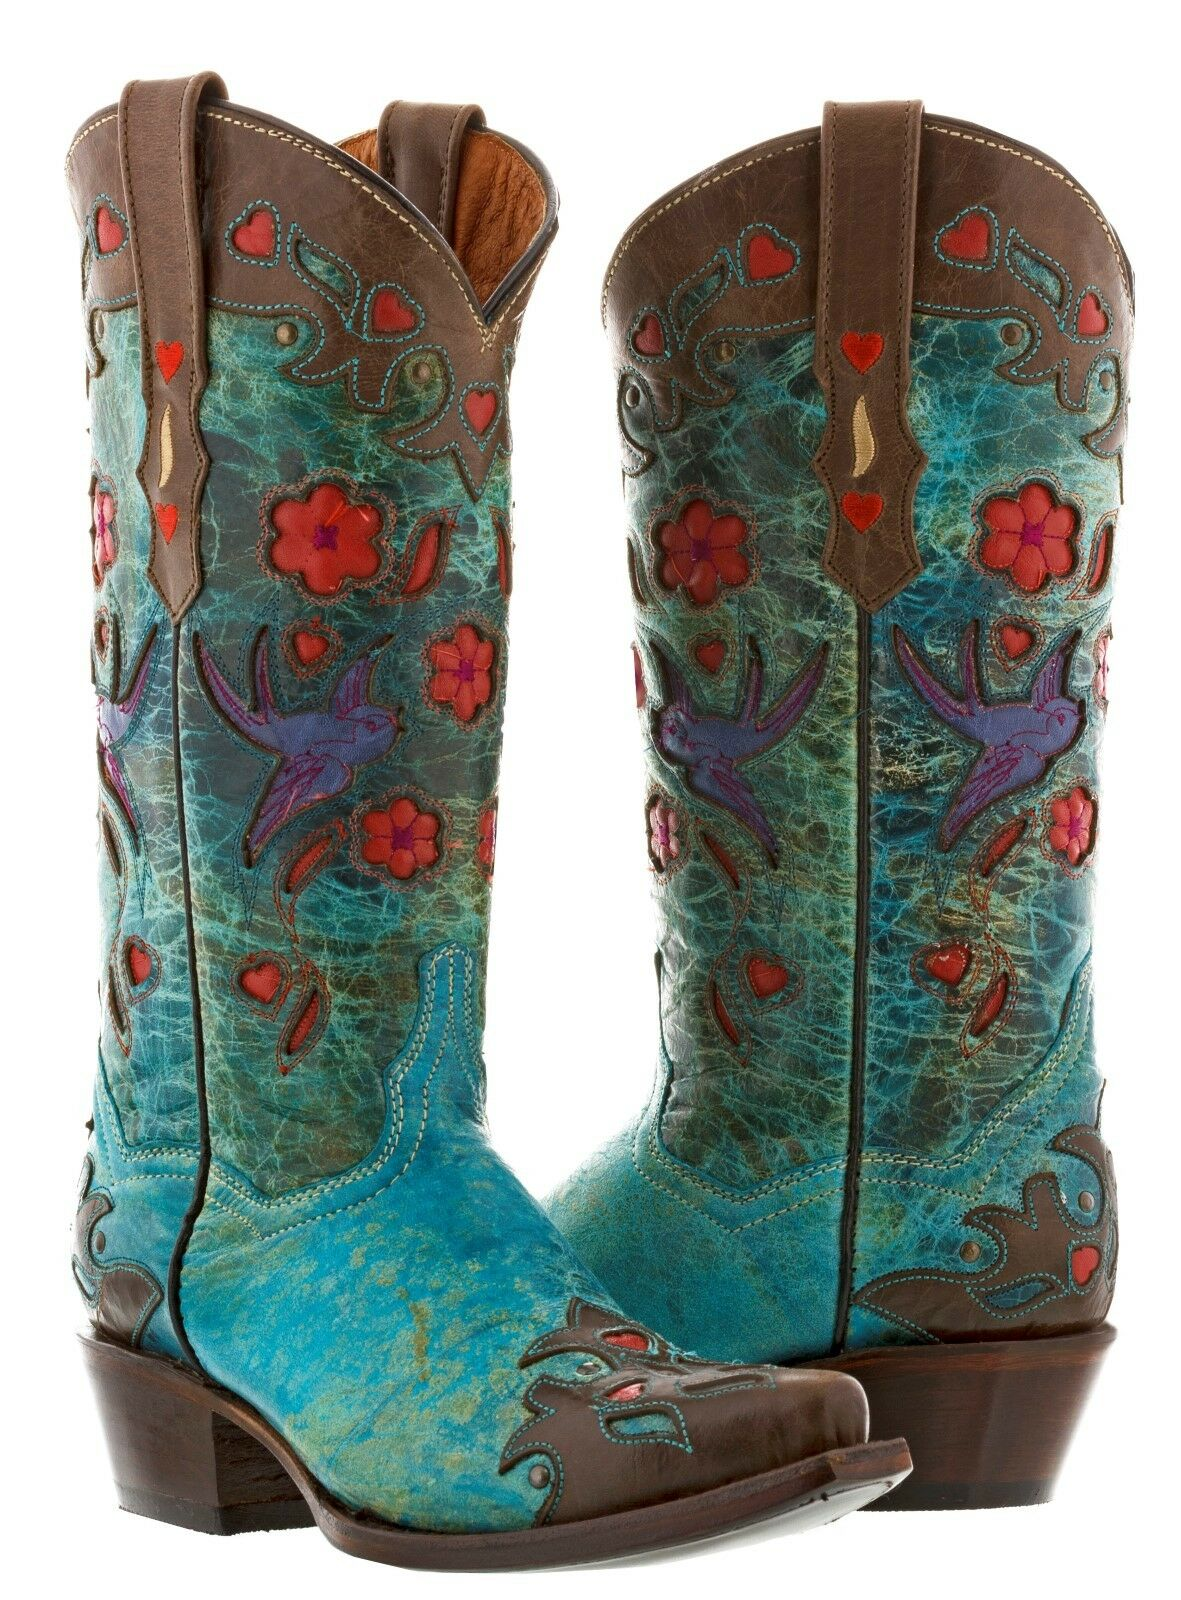 Para Mujer Marrón Cuero Occidental Occidental Occidental Rodeo Vaquera Turquesa Robin botas de vaquero flores  buena calidad